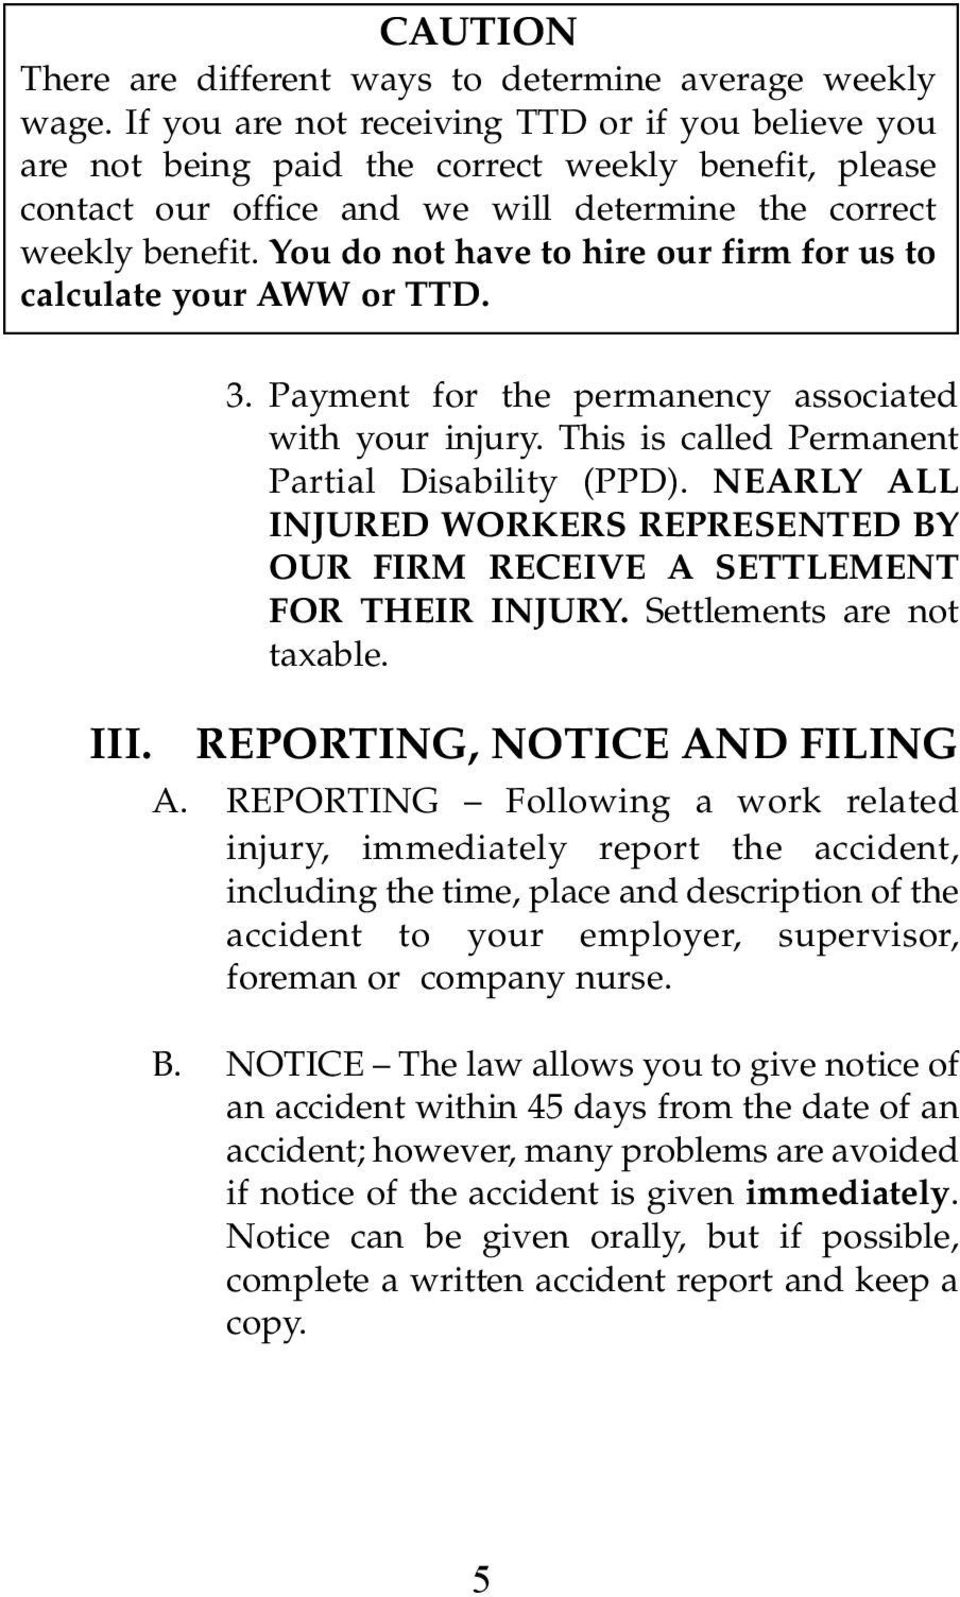 You do not have to hire our firm for us to calculate your AWW or TTD. 3. Payment for the permanency associated with your injury. This is called Permanent Partial Disability (PPD).